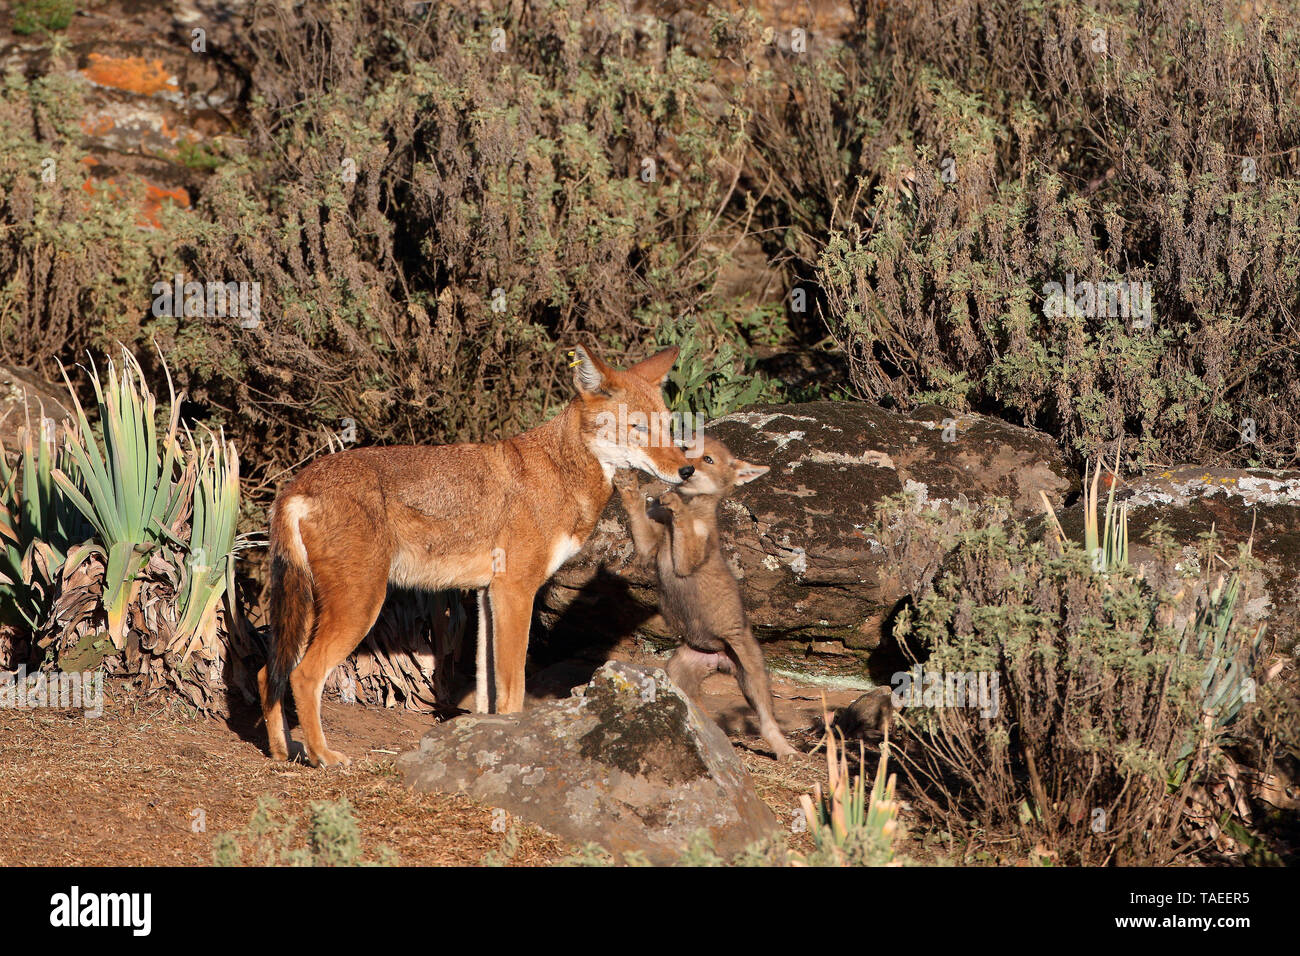 Abyssinian wolf (Canis simensis) Alpha she-wolf and 1 month old cub, Web Valley, Bale mountains, Ethiopia - Stock Image